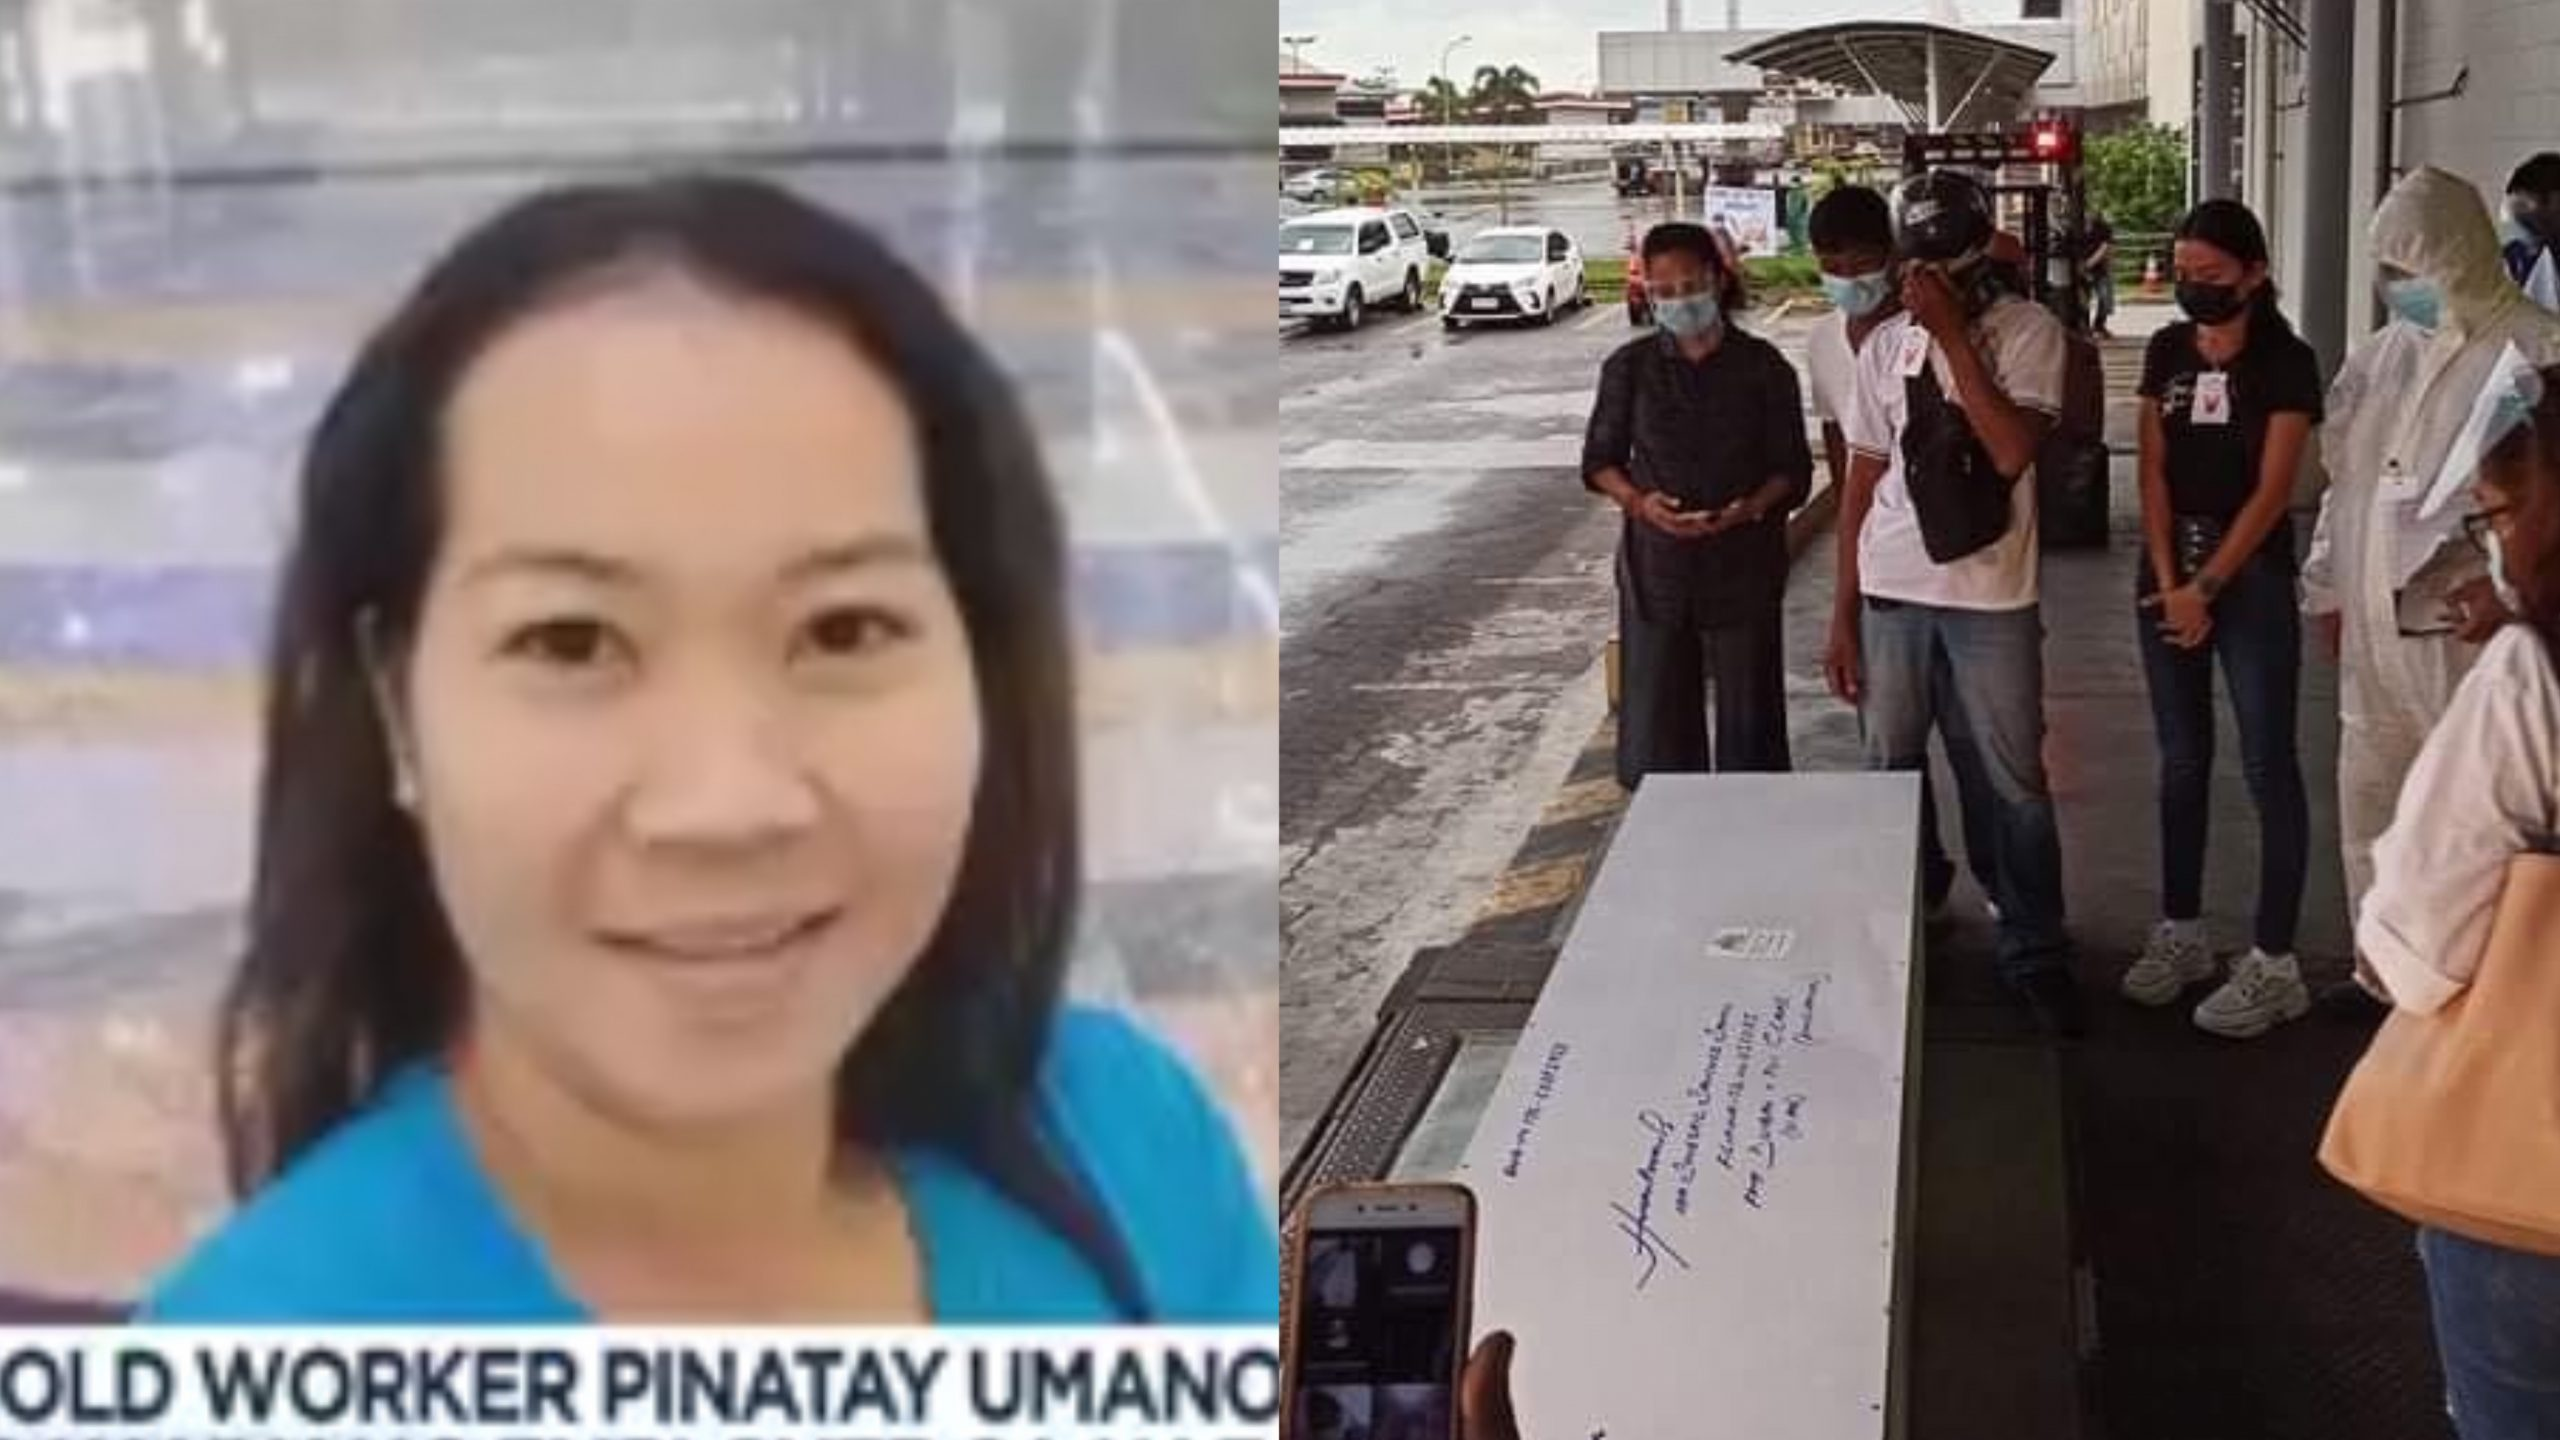 Remains of OFW killed by employer in UAE arrived in Philippines